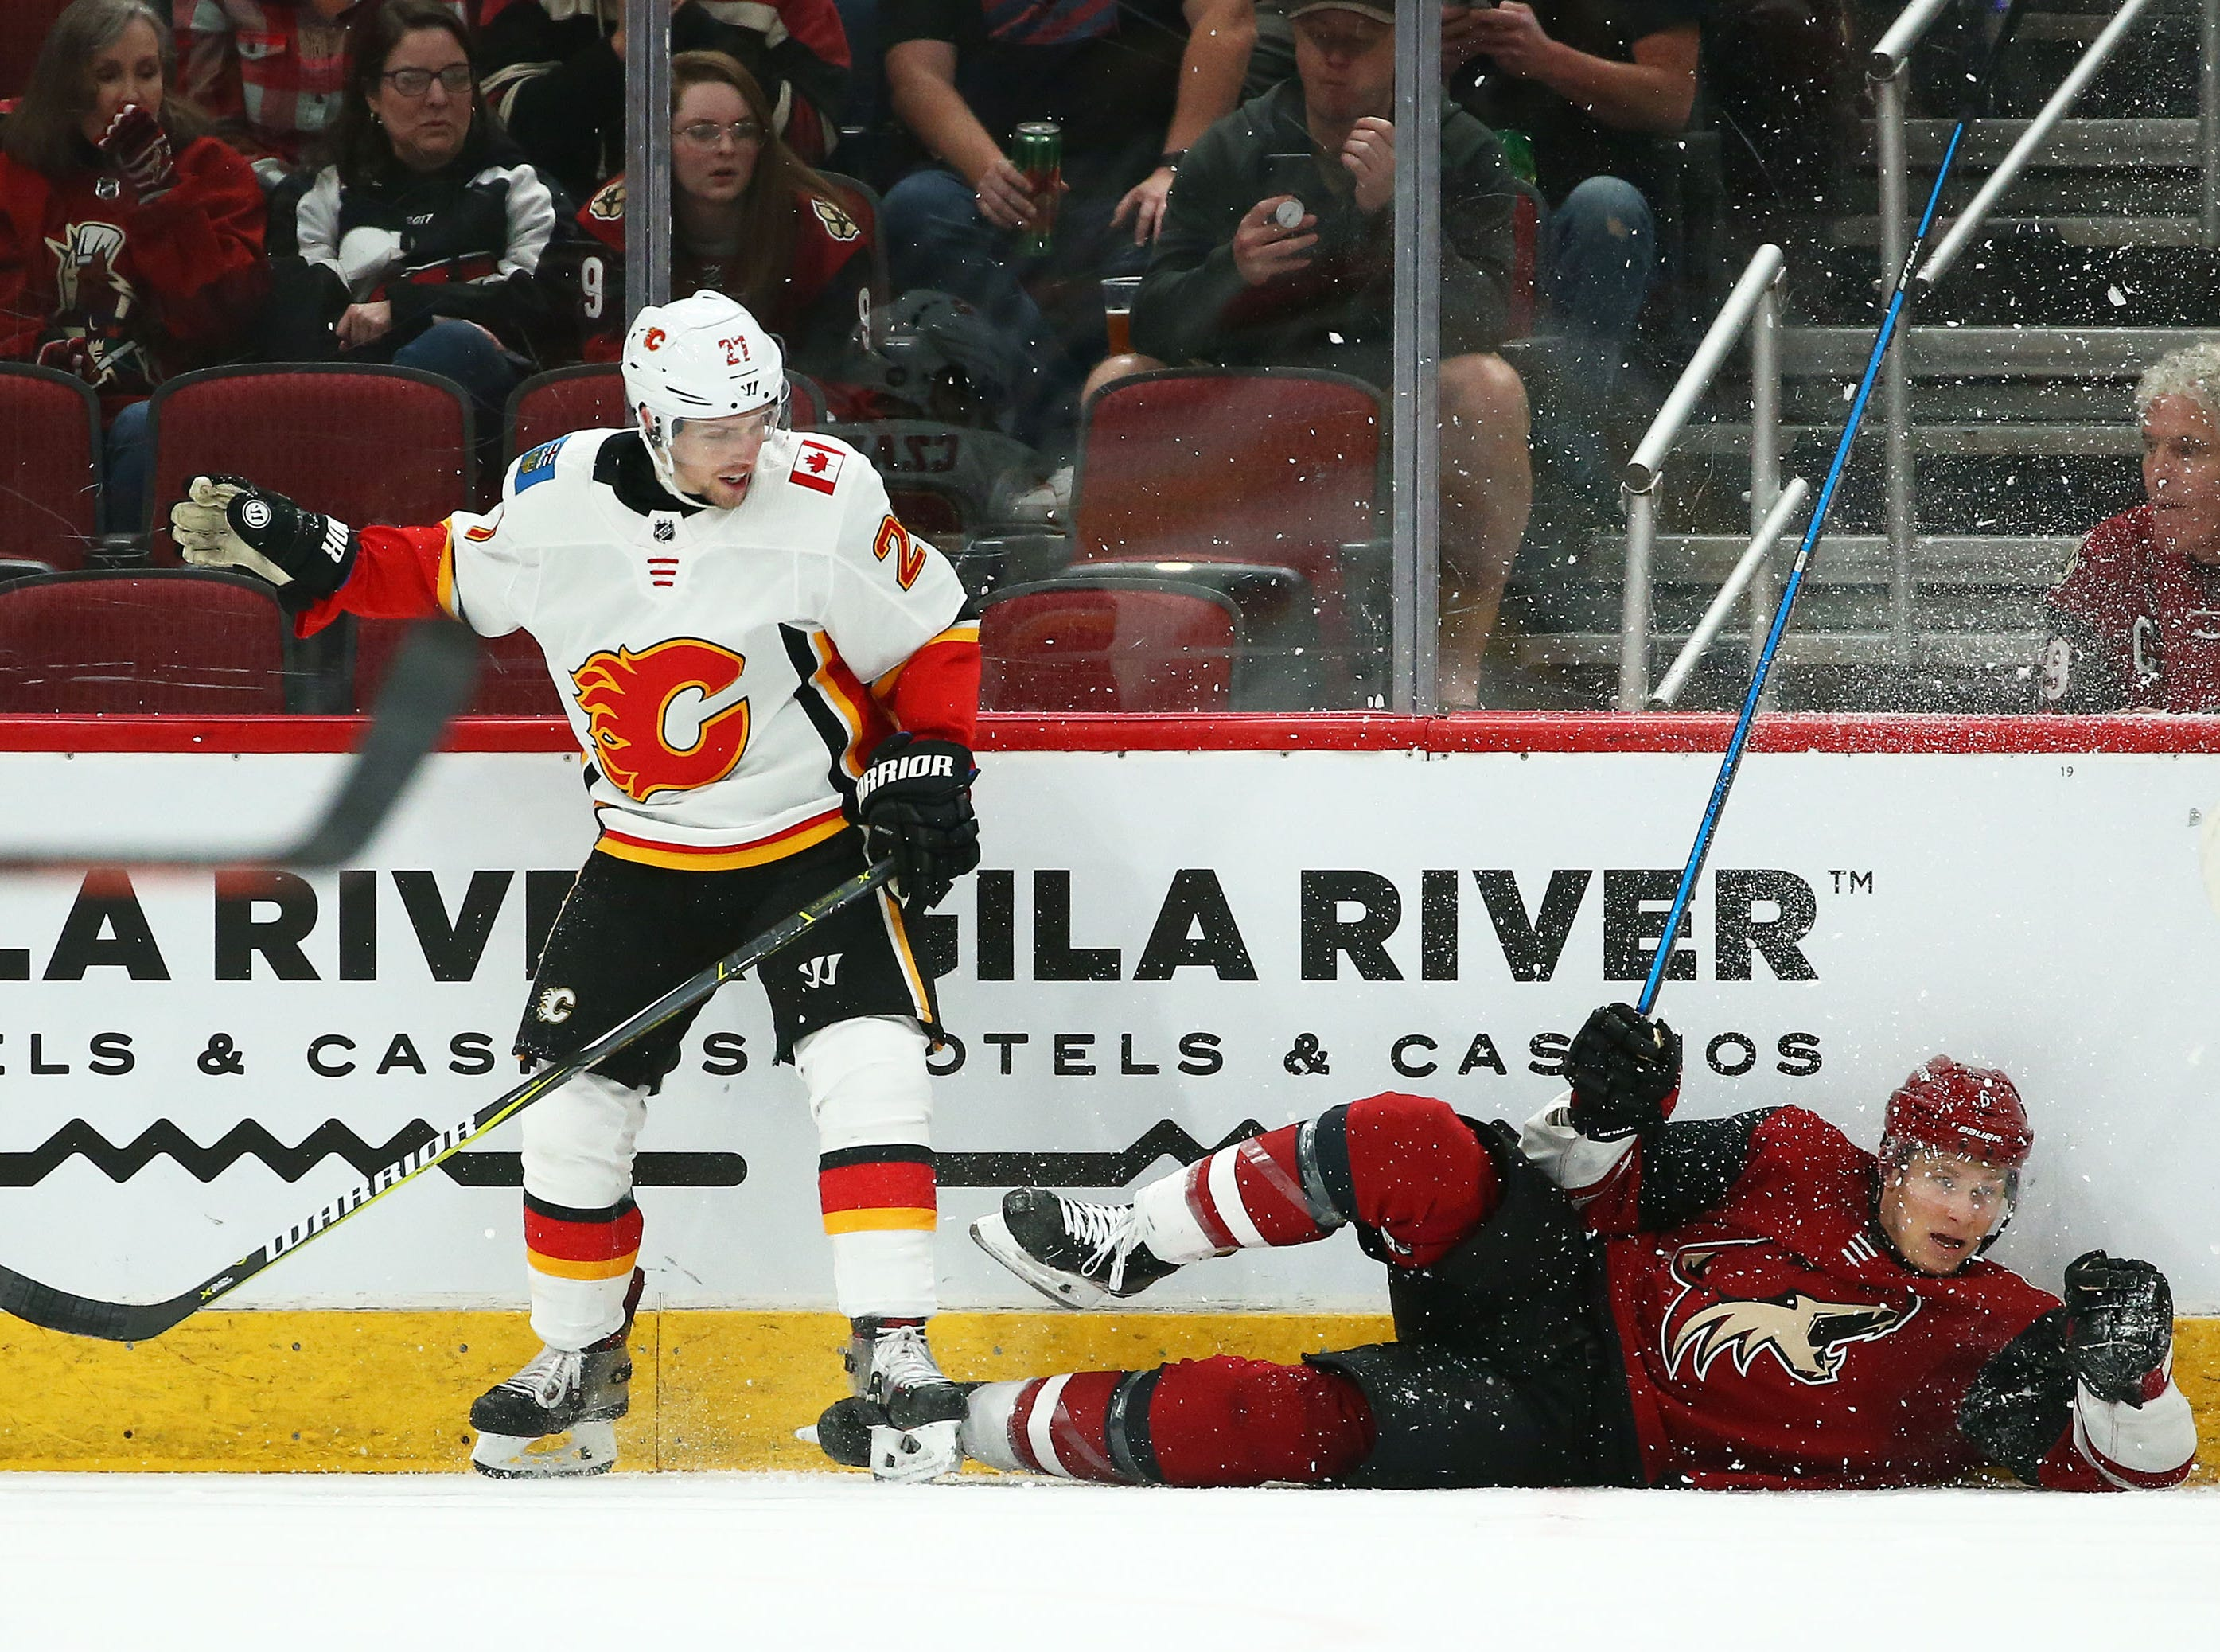 Calgary Flames center Austin Czarnik (27) checks Arizona Coyotes defenseman Jakob Chychrun (6) in the second period on Mar. 7, 2019, at Gila River Arena in Glendale, Ariz.